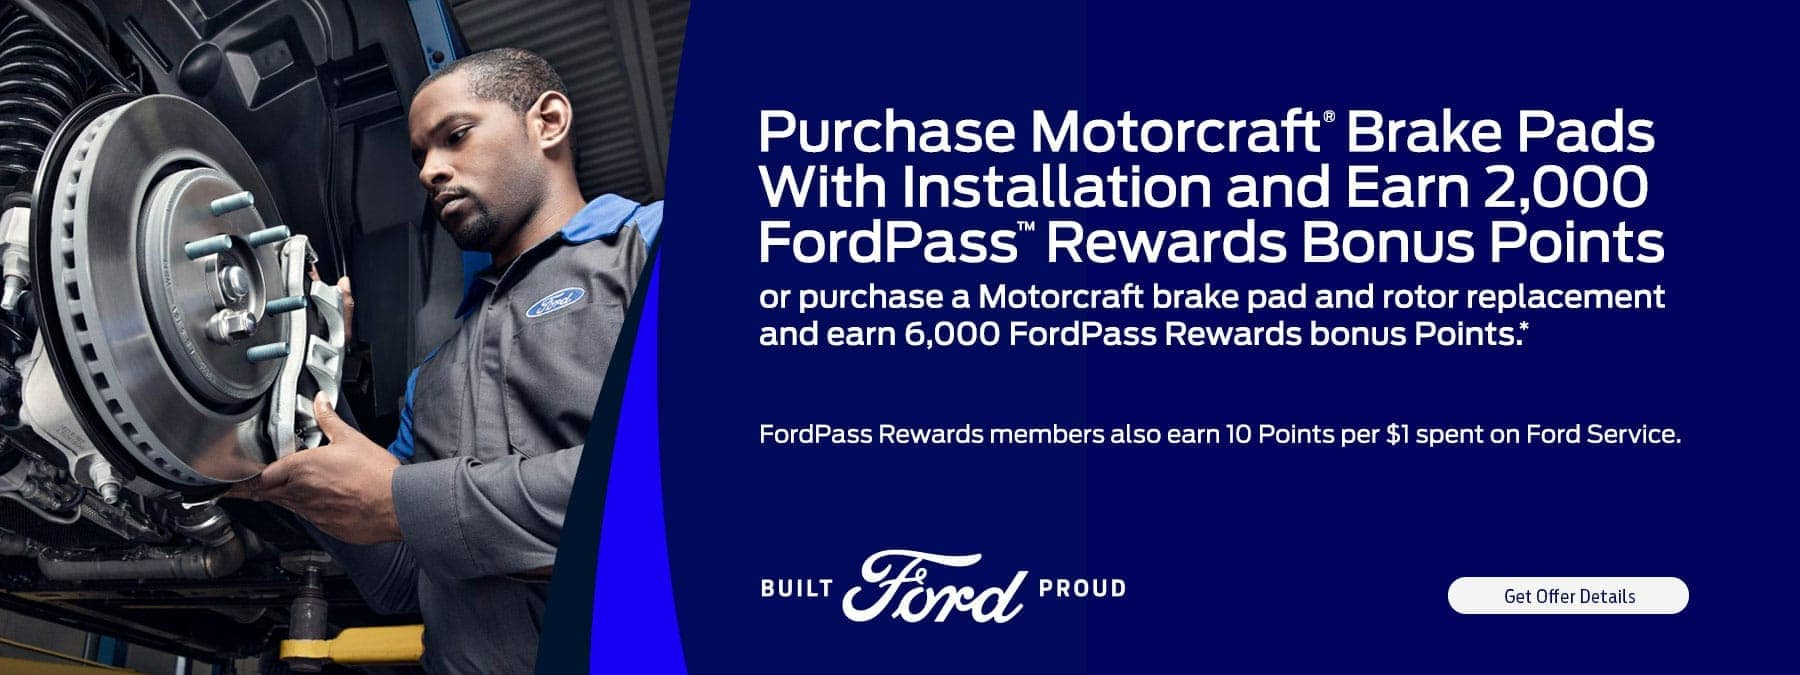 Purchase Motorcraft Brake Pads and earn rewards points